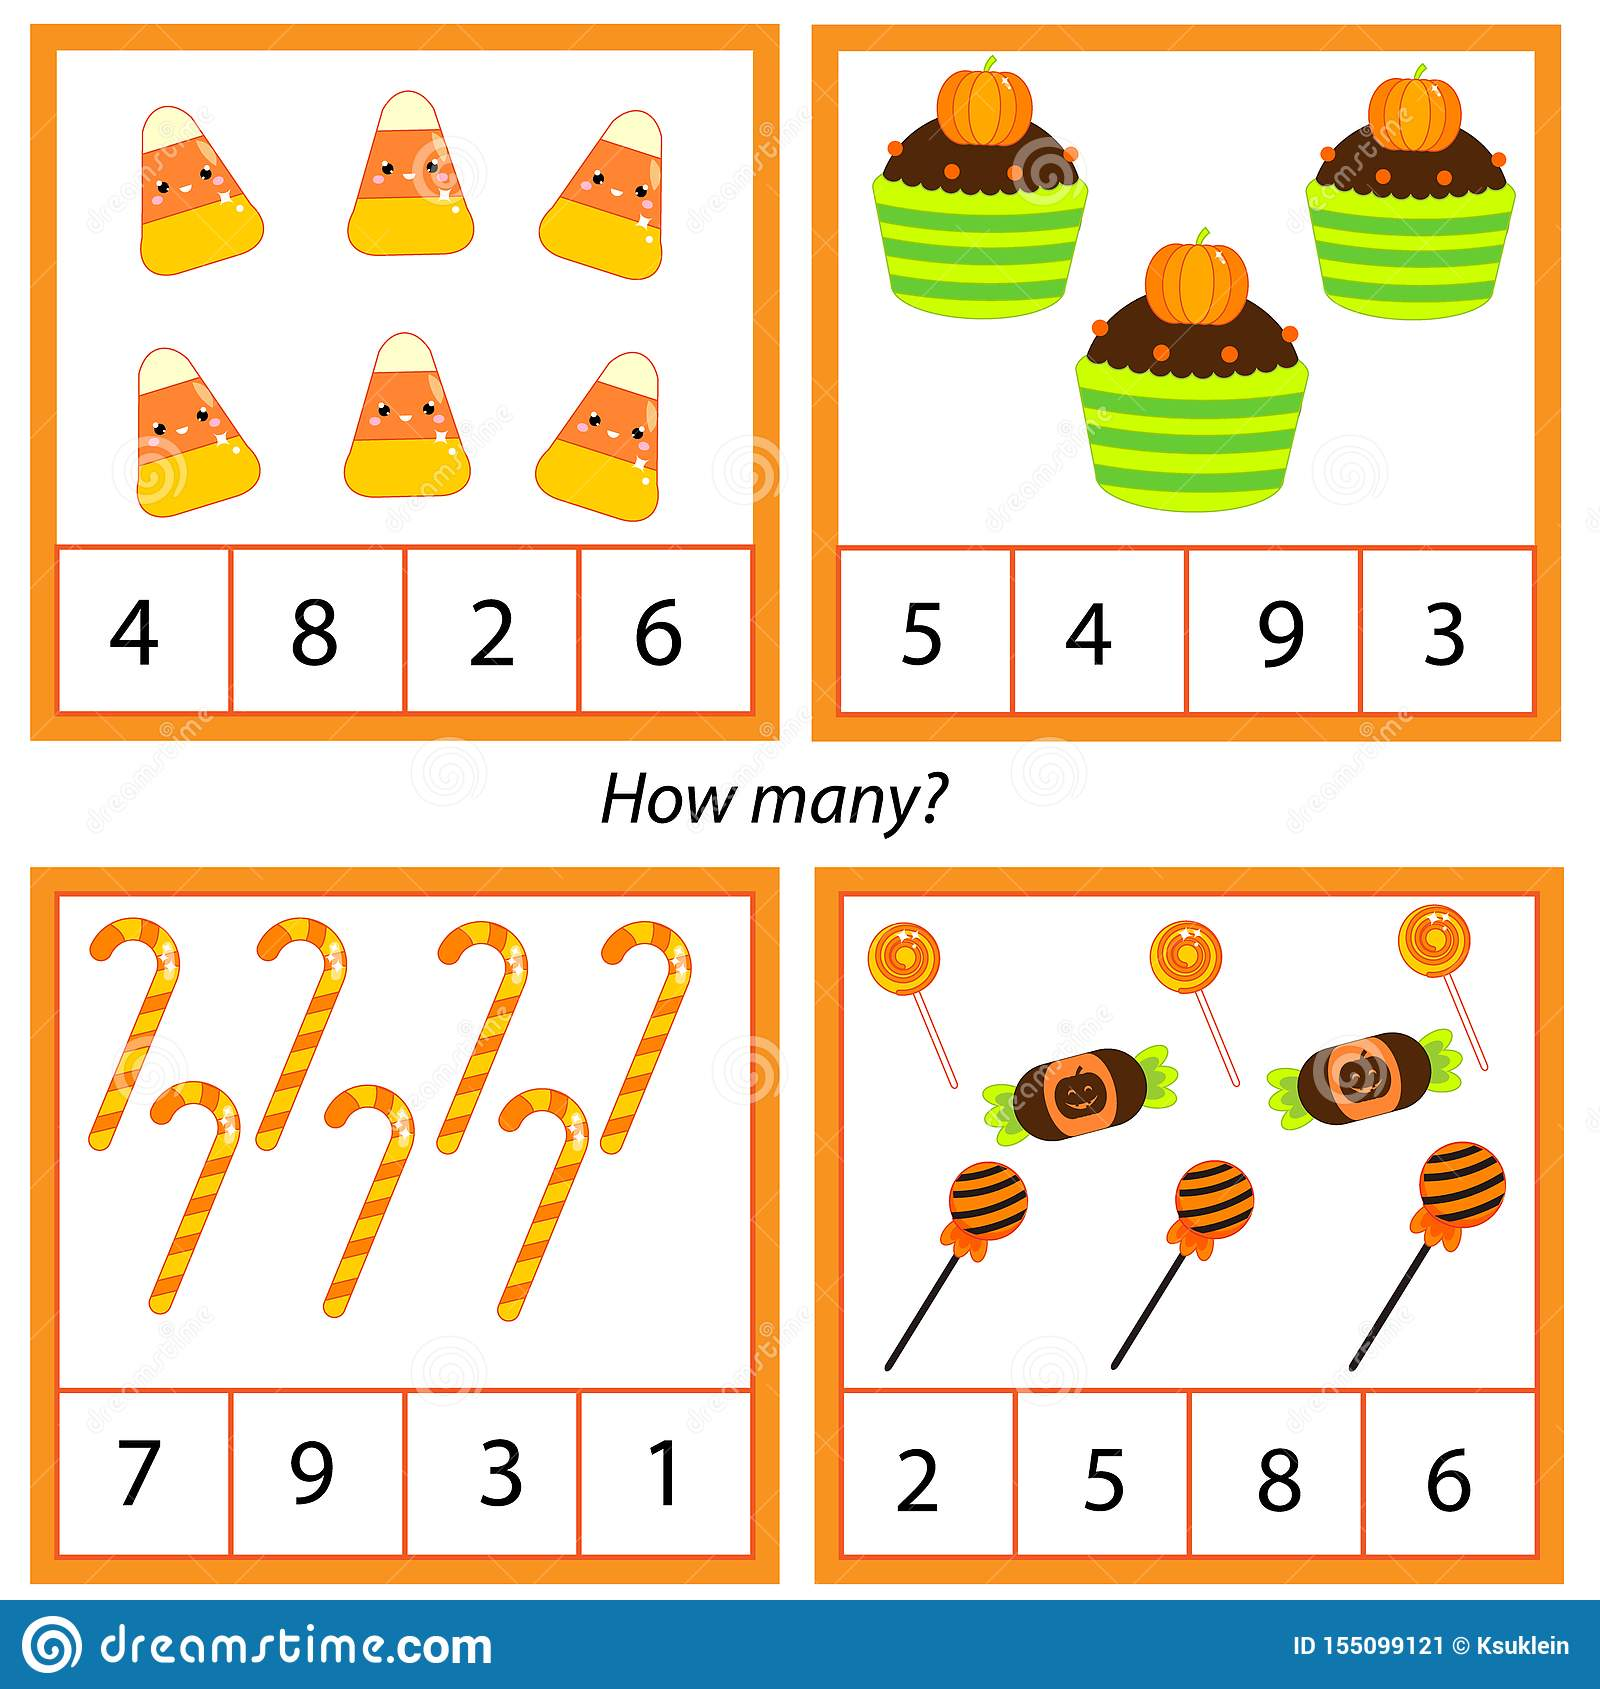 Counting Educational Children Game Study Math Numbers